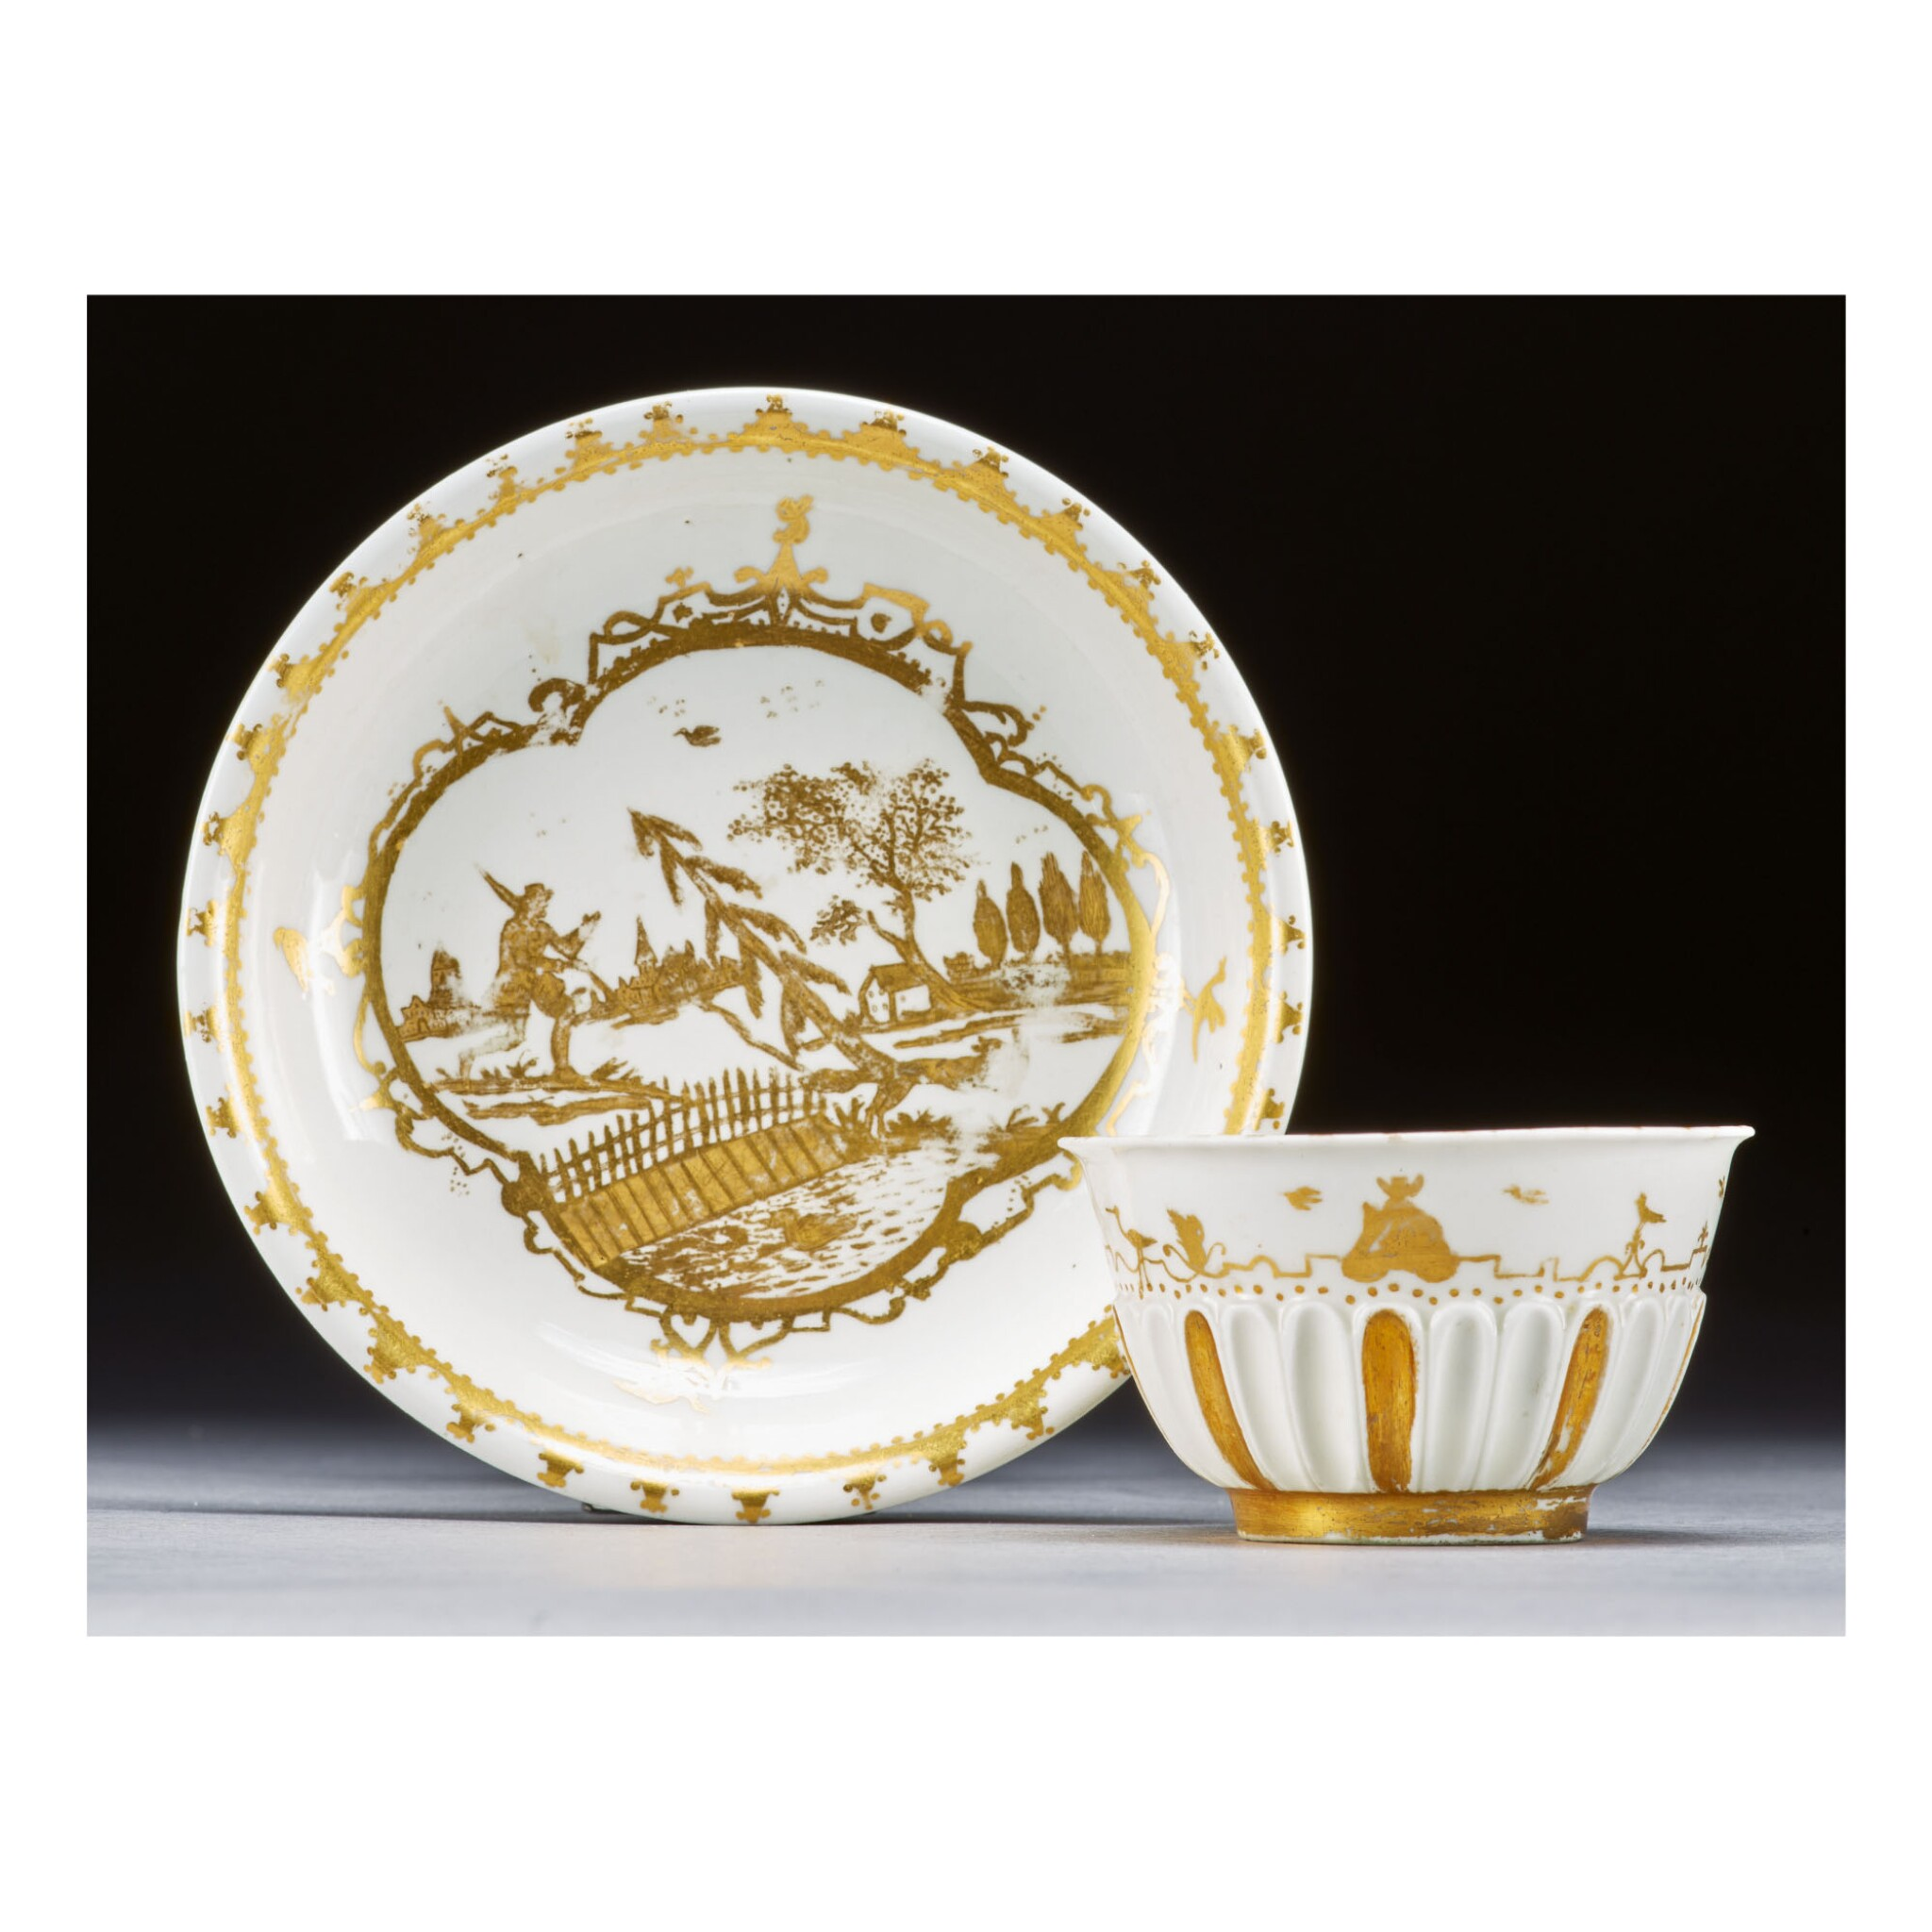 A MEISSEN HAUSMALER FLUTED TEABOWL AND SAUCER THE PORCELAIN CIRCA 1715-20, THE DECORATION CIRCA 1730